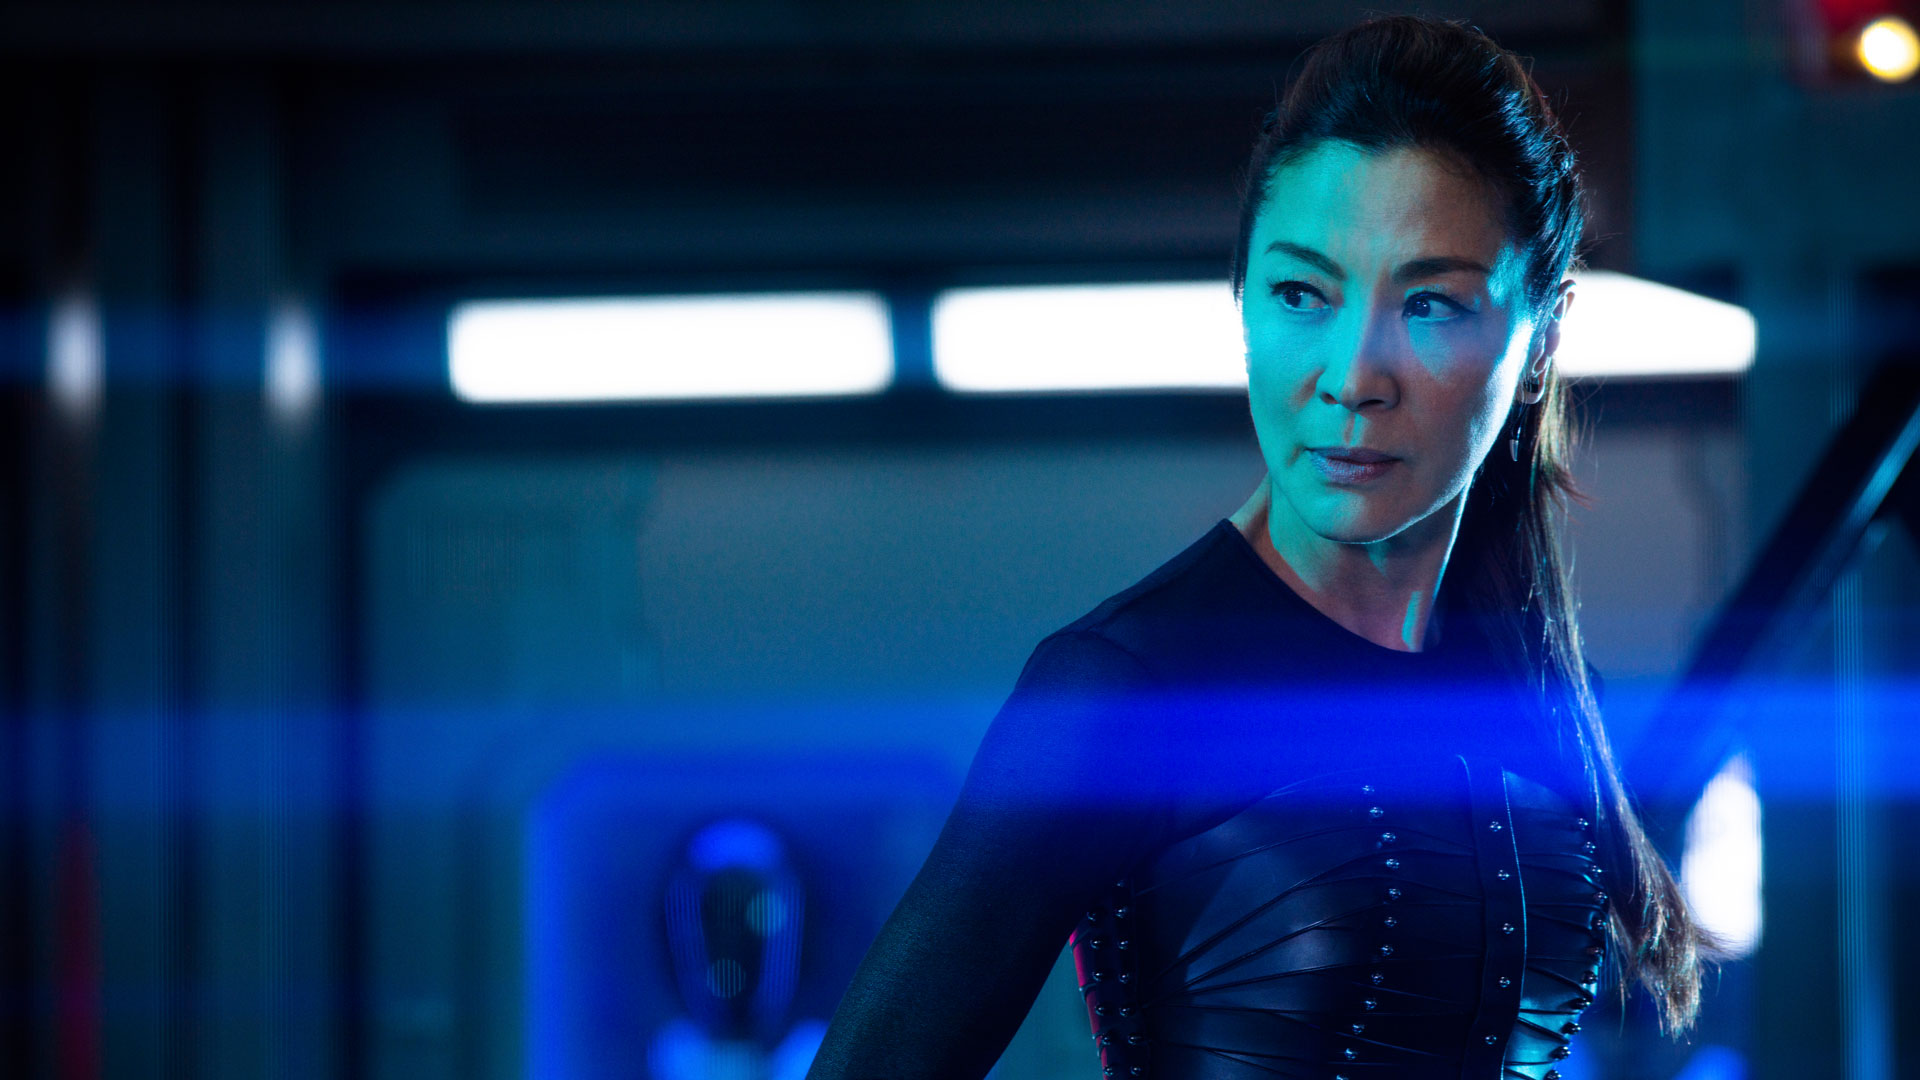 CBS All Access Goes Black Ops With Michelle Yeoh For New Star Trek Series